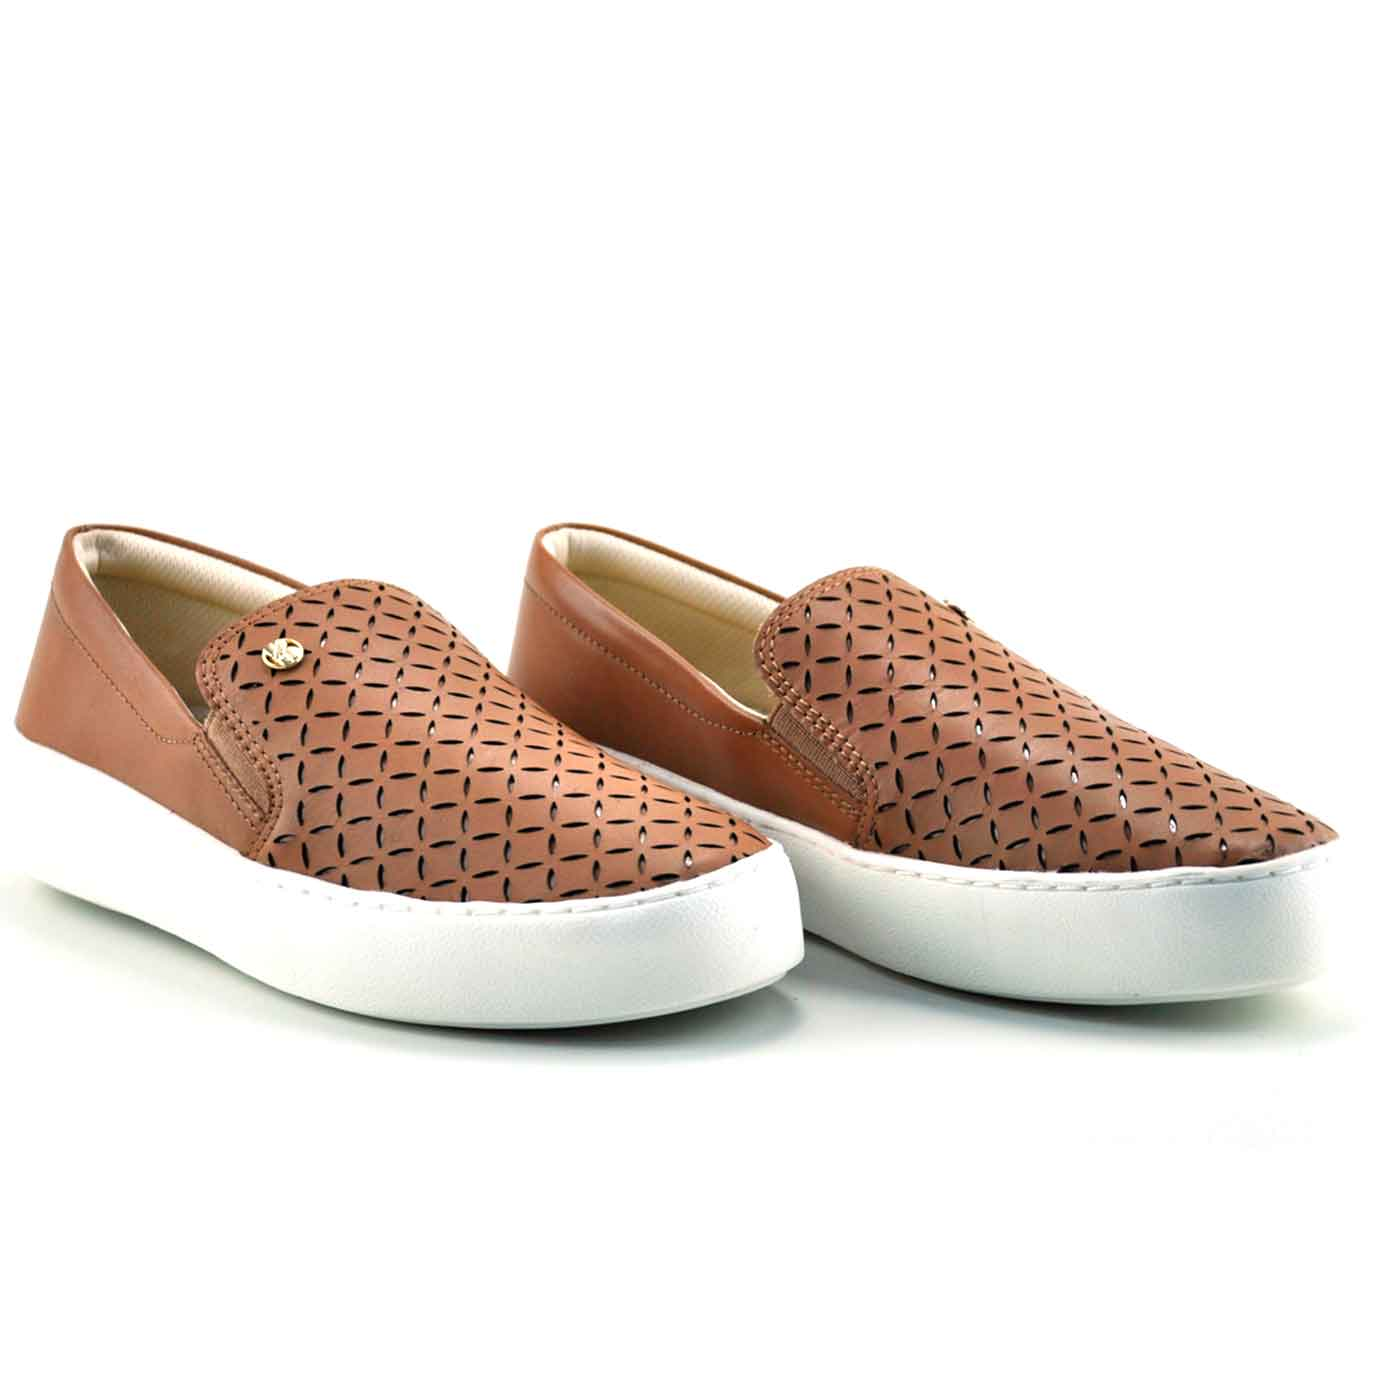 TENIS BOTTERO SLIP ON - 315203